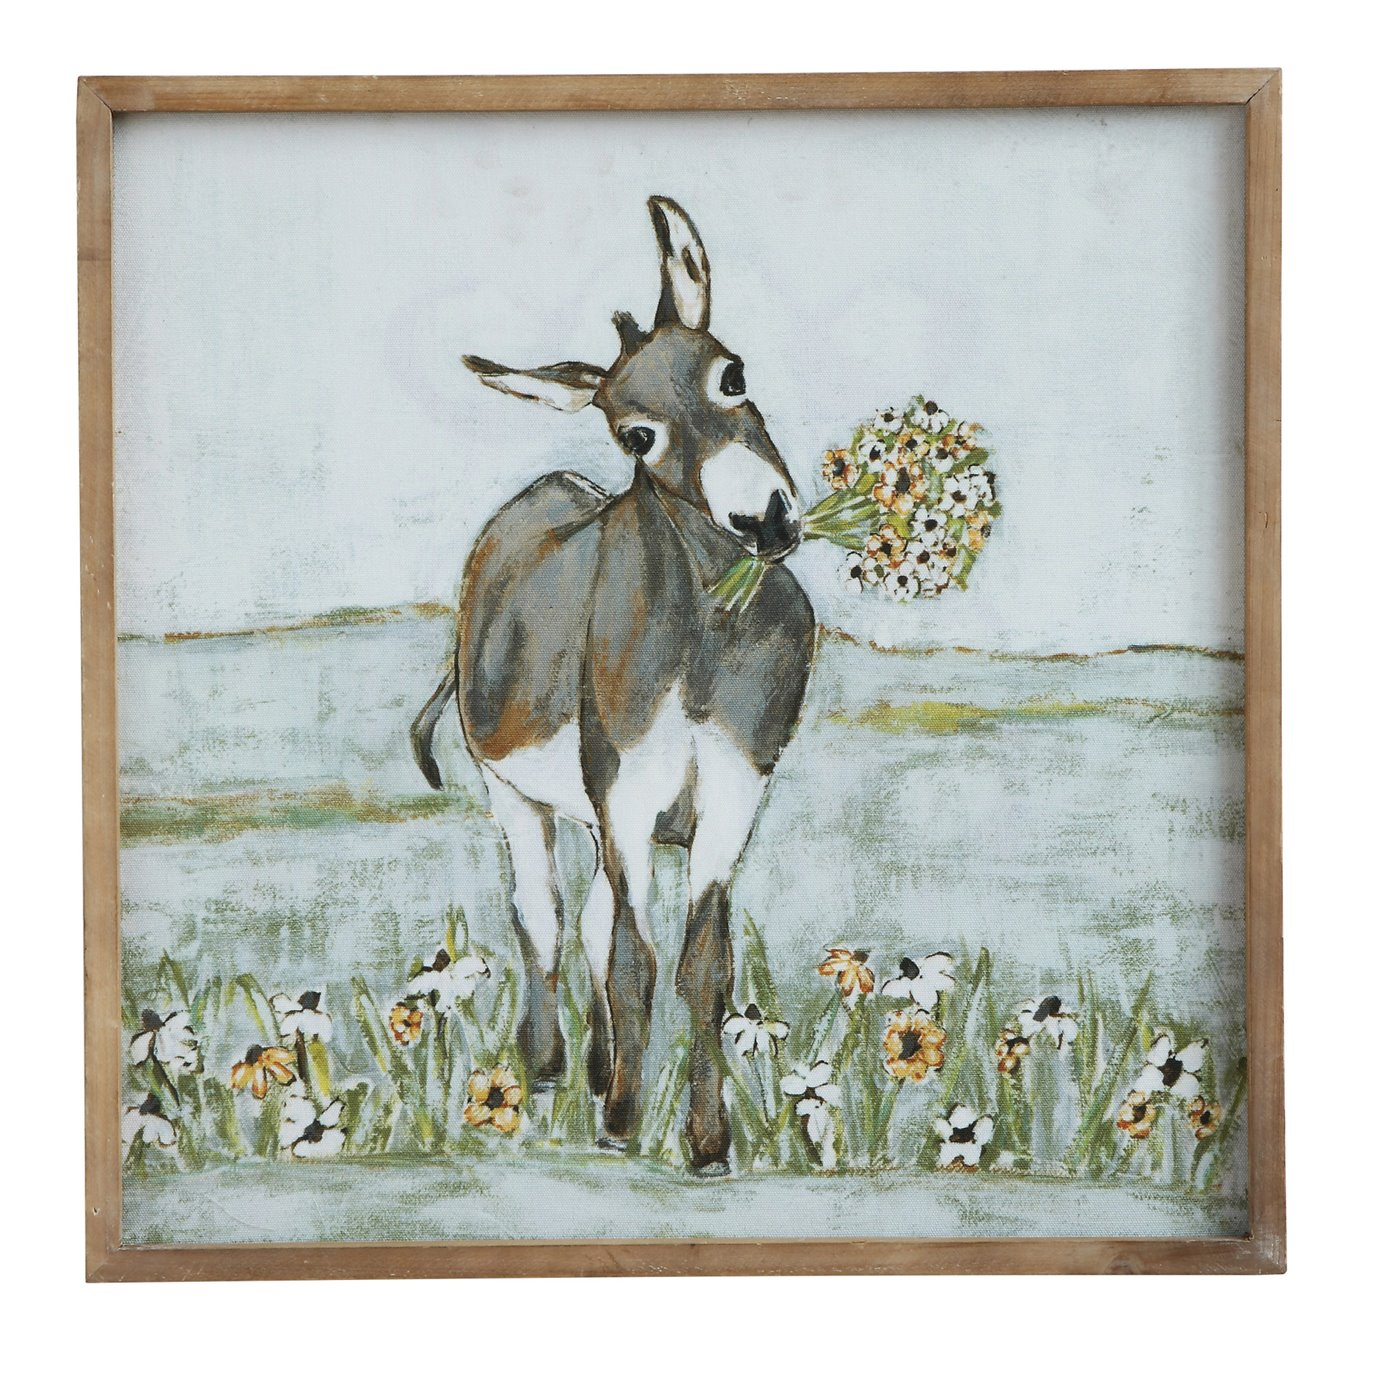 Donkey Wall Décor in Wood Frame